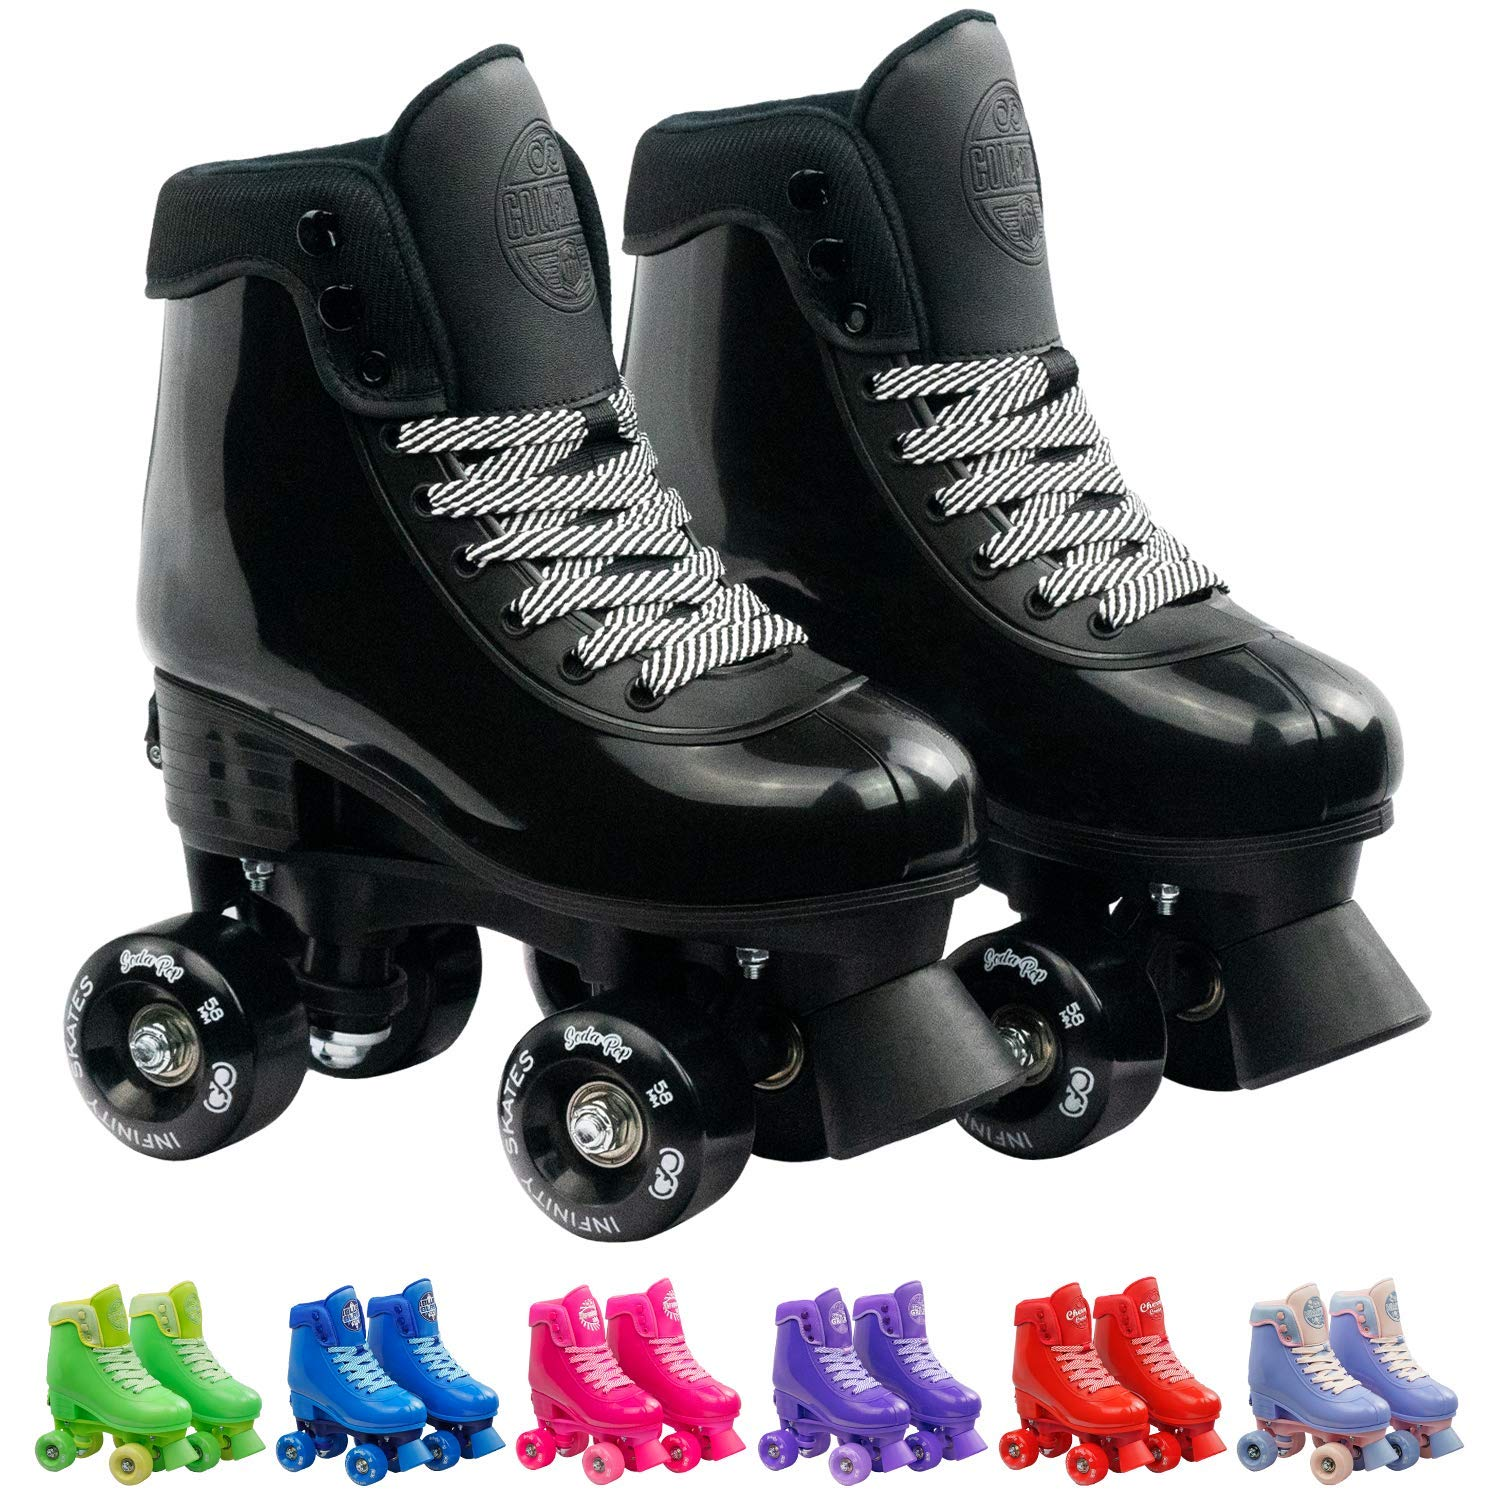 Infinity Skates Adjustable Roller Skates for Girls and Boys - Soda Pop Series (Black/Small)